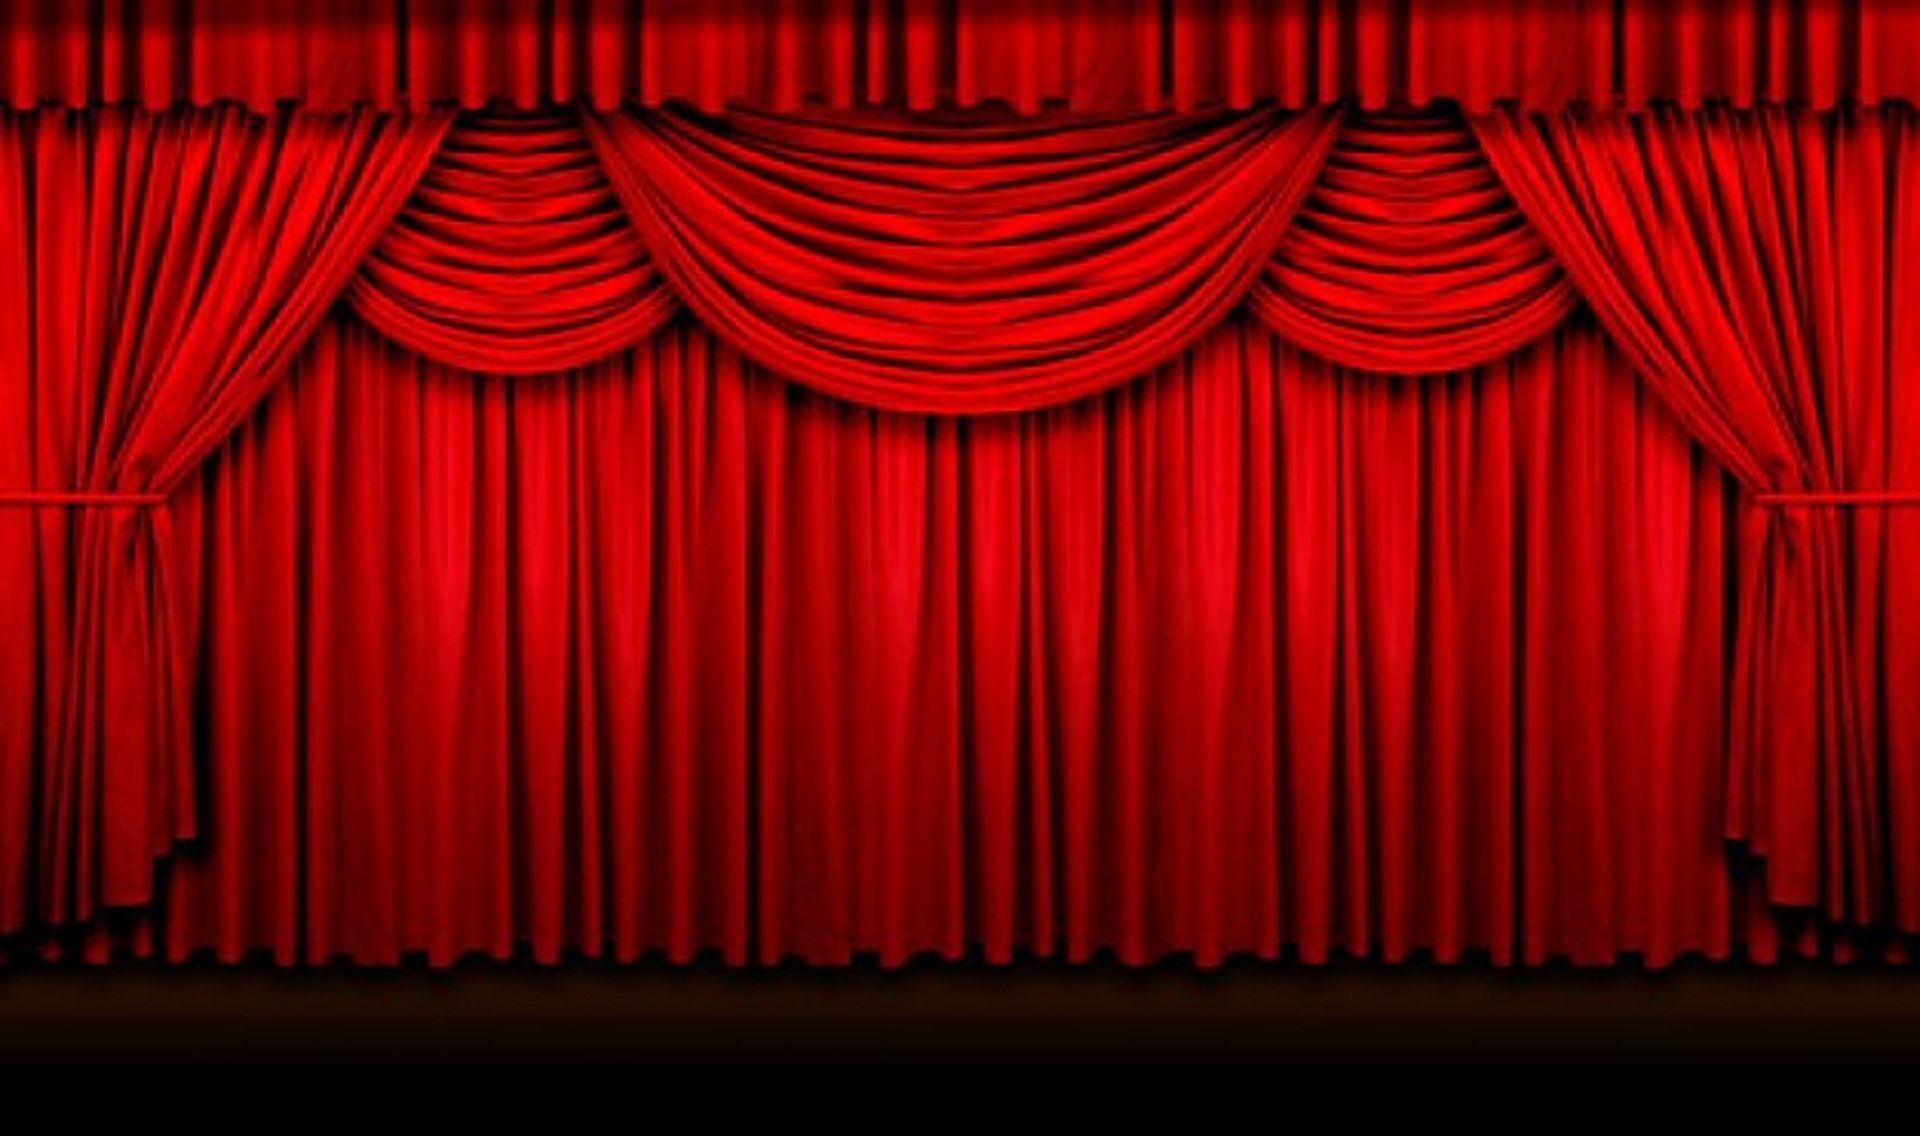 Int Stage Red Curtains Large Episodeinteractive Episode Size